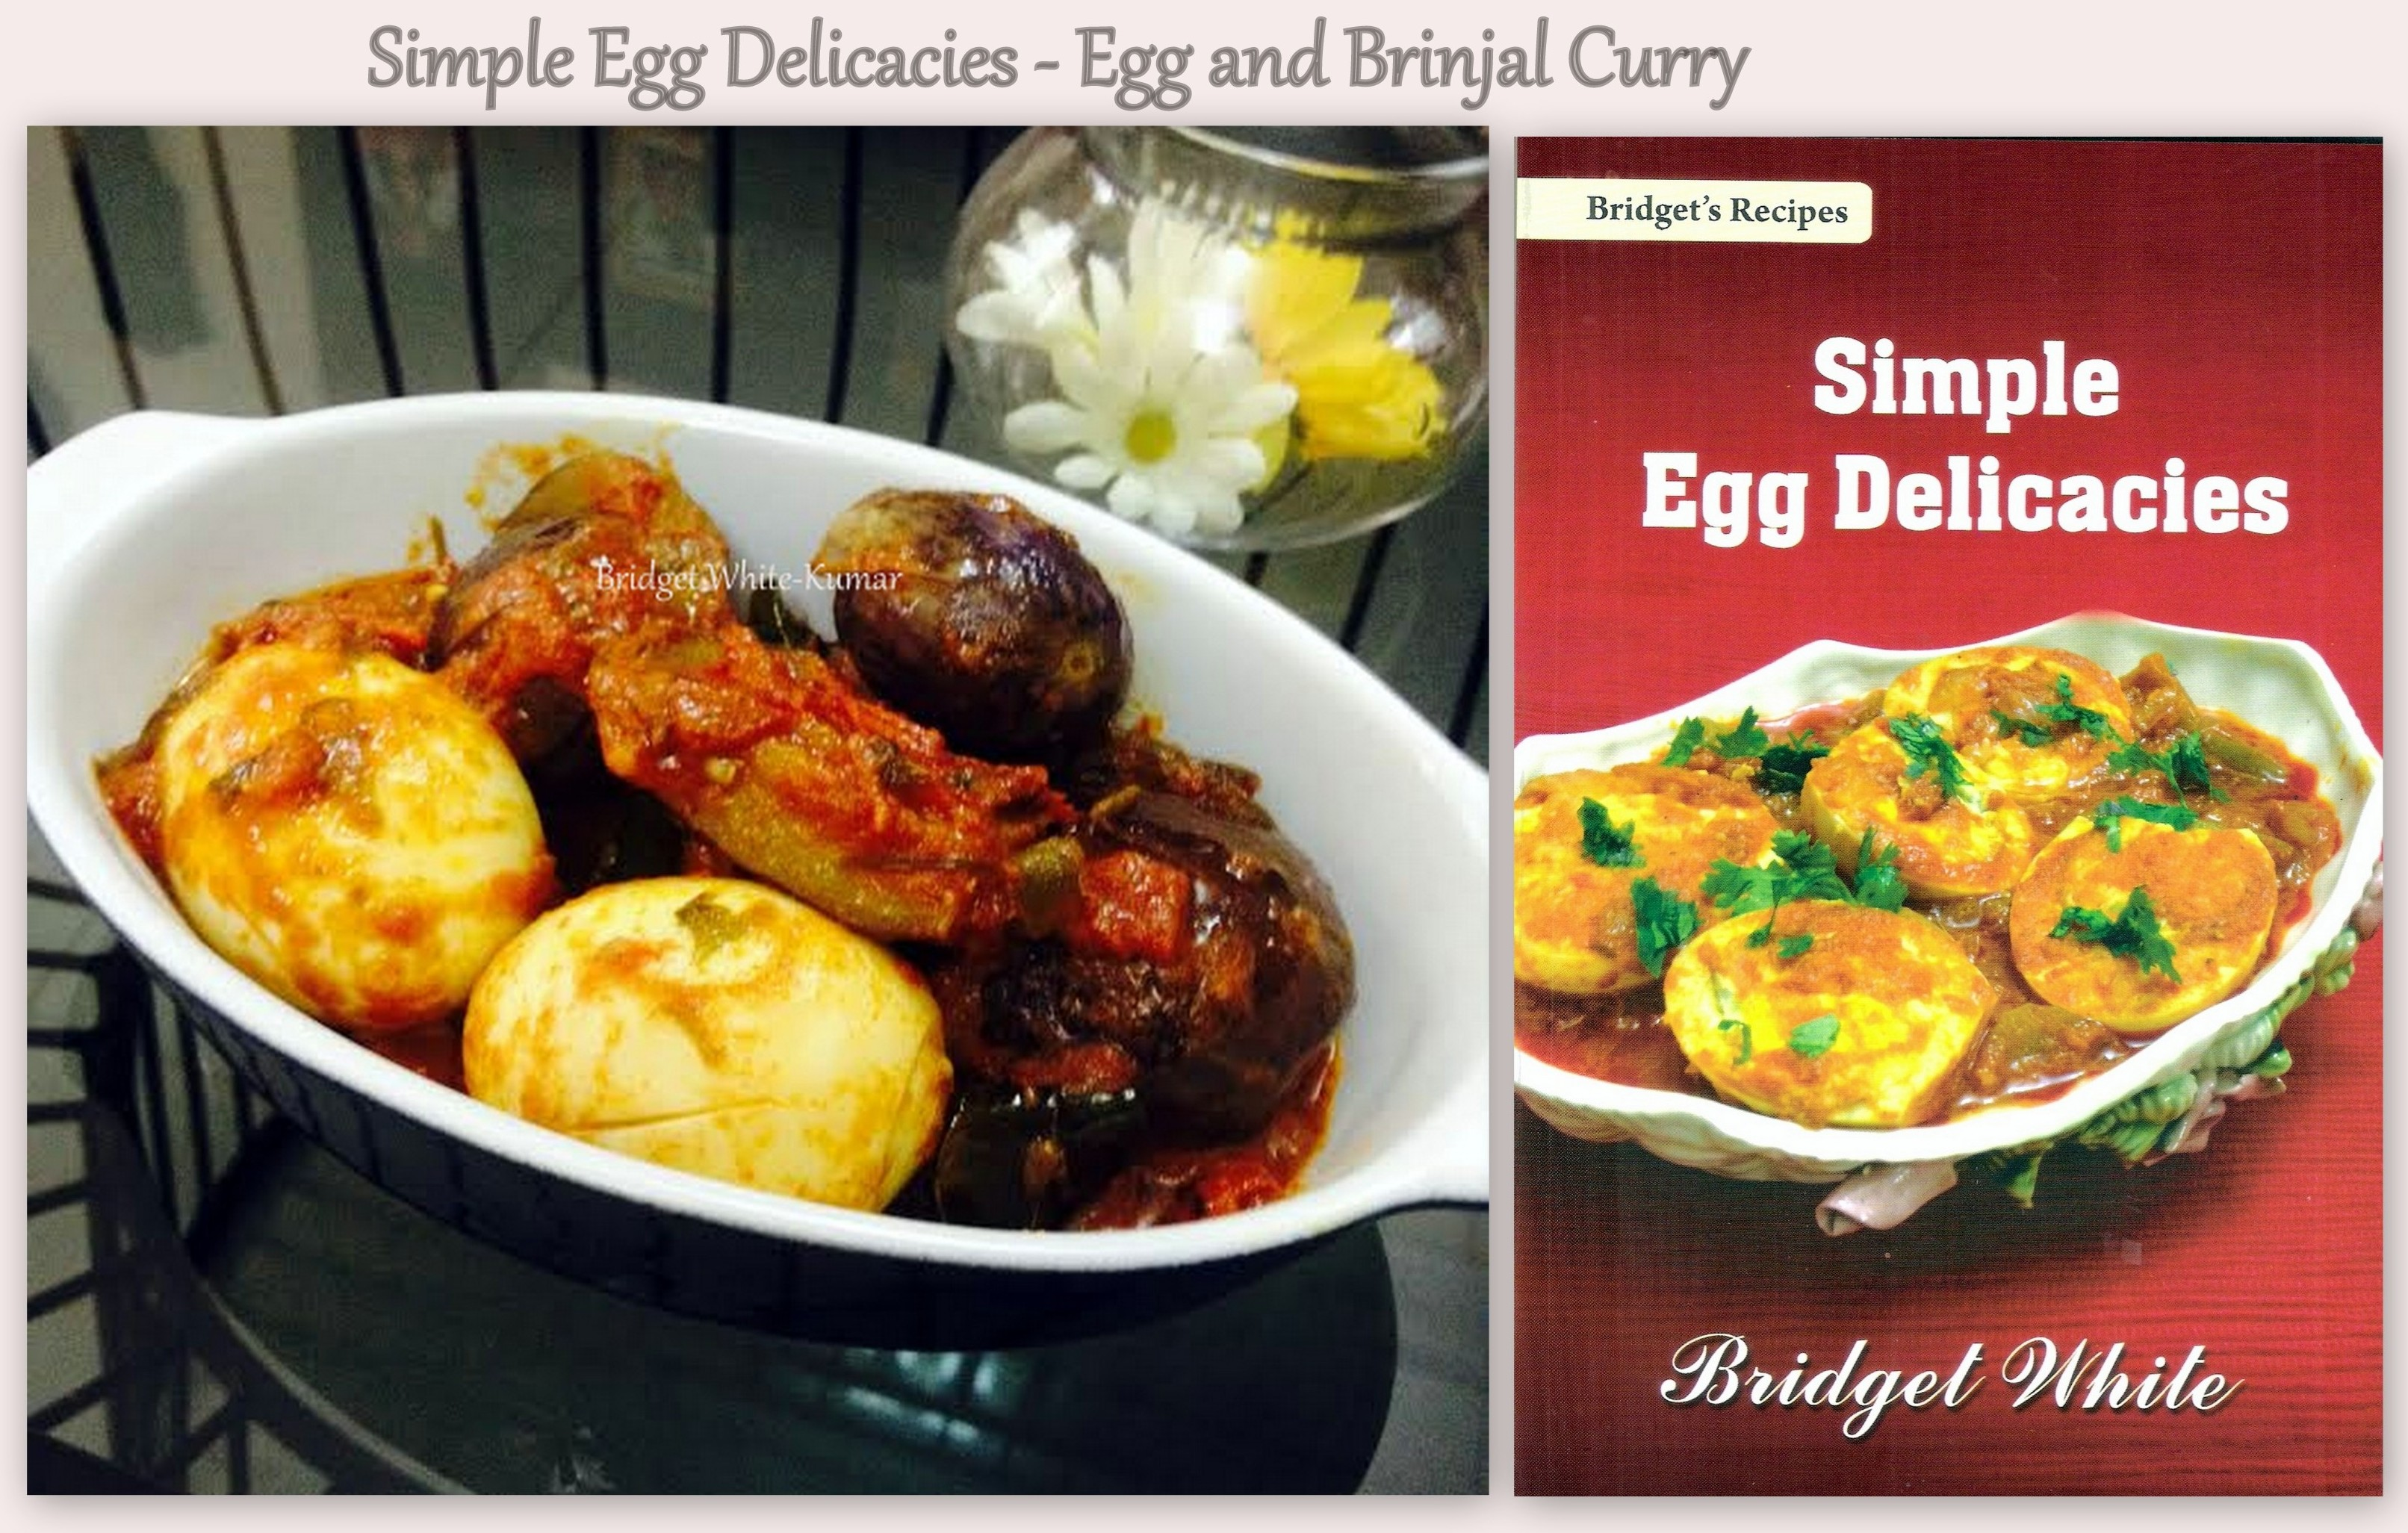 Egg and Brinjal with recipe book 1